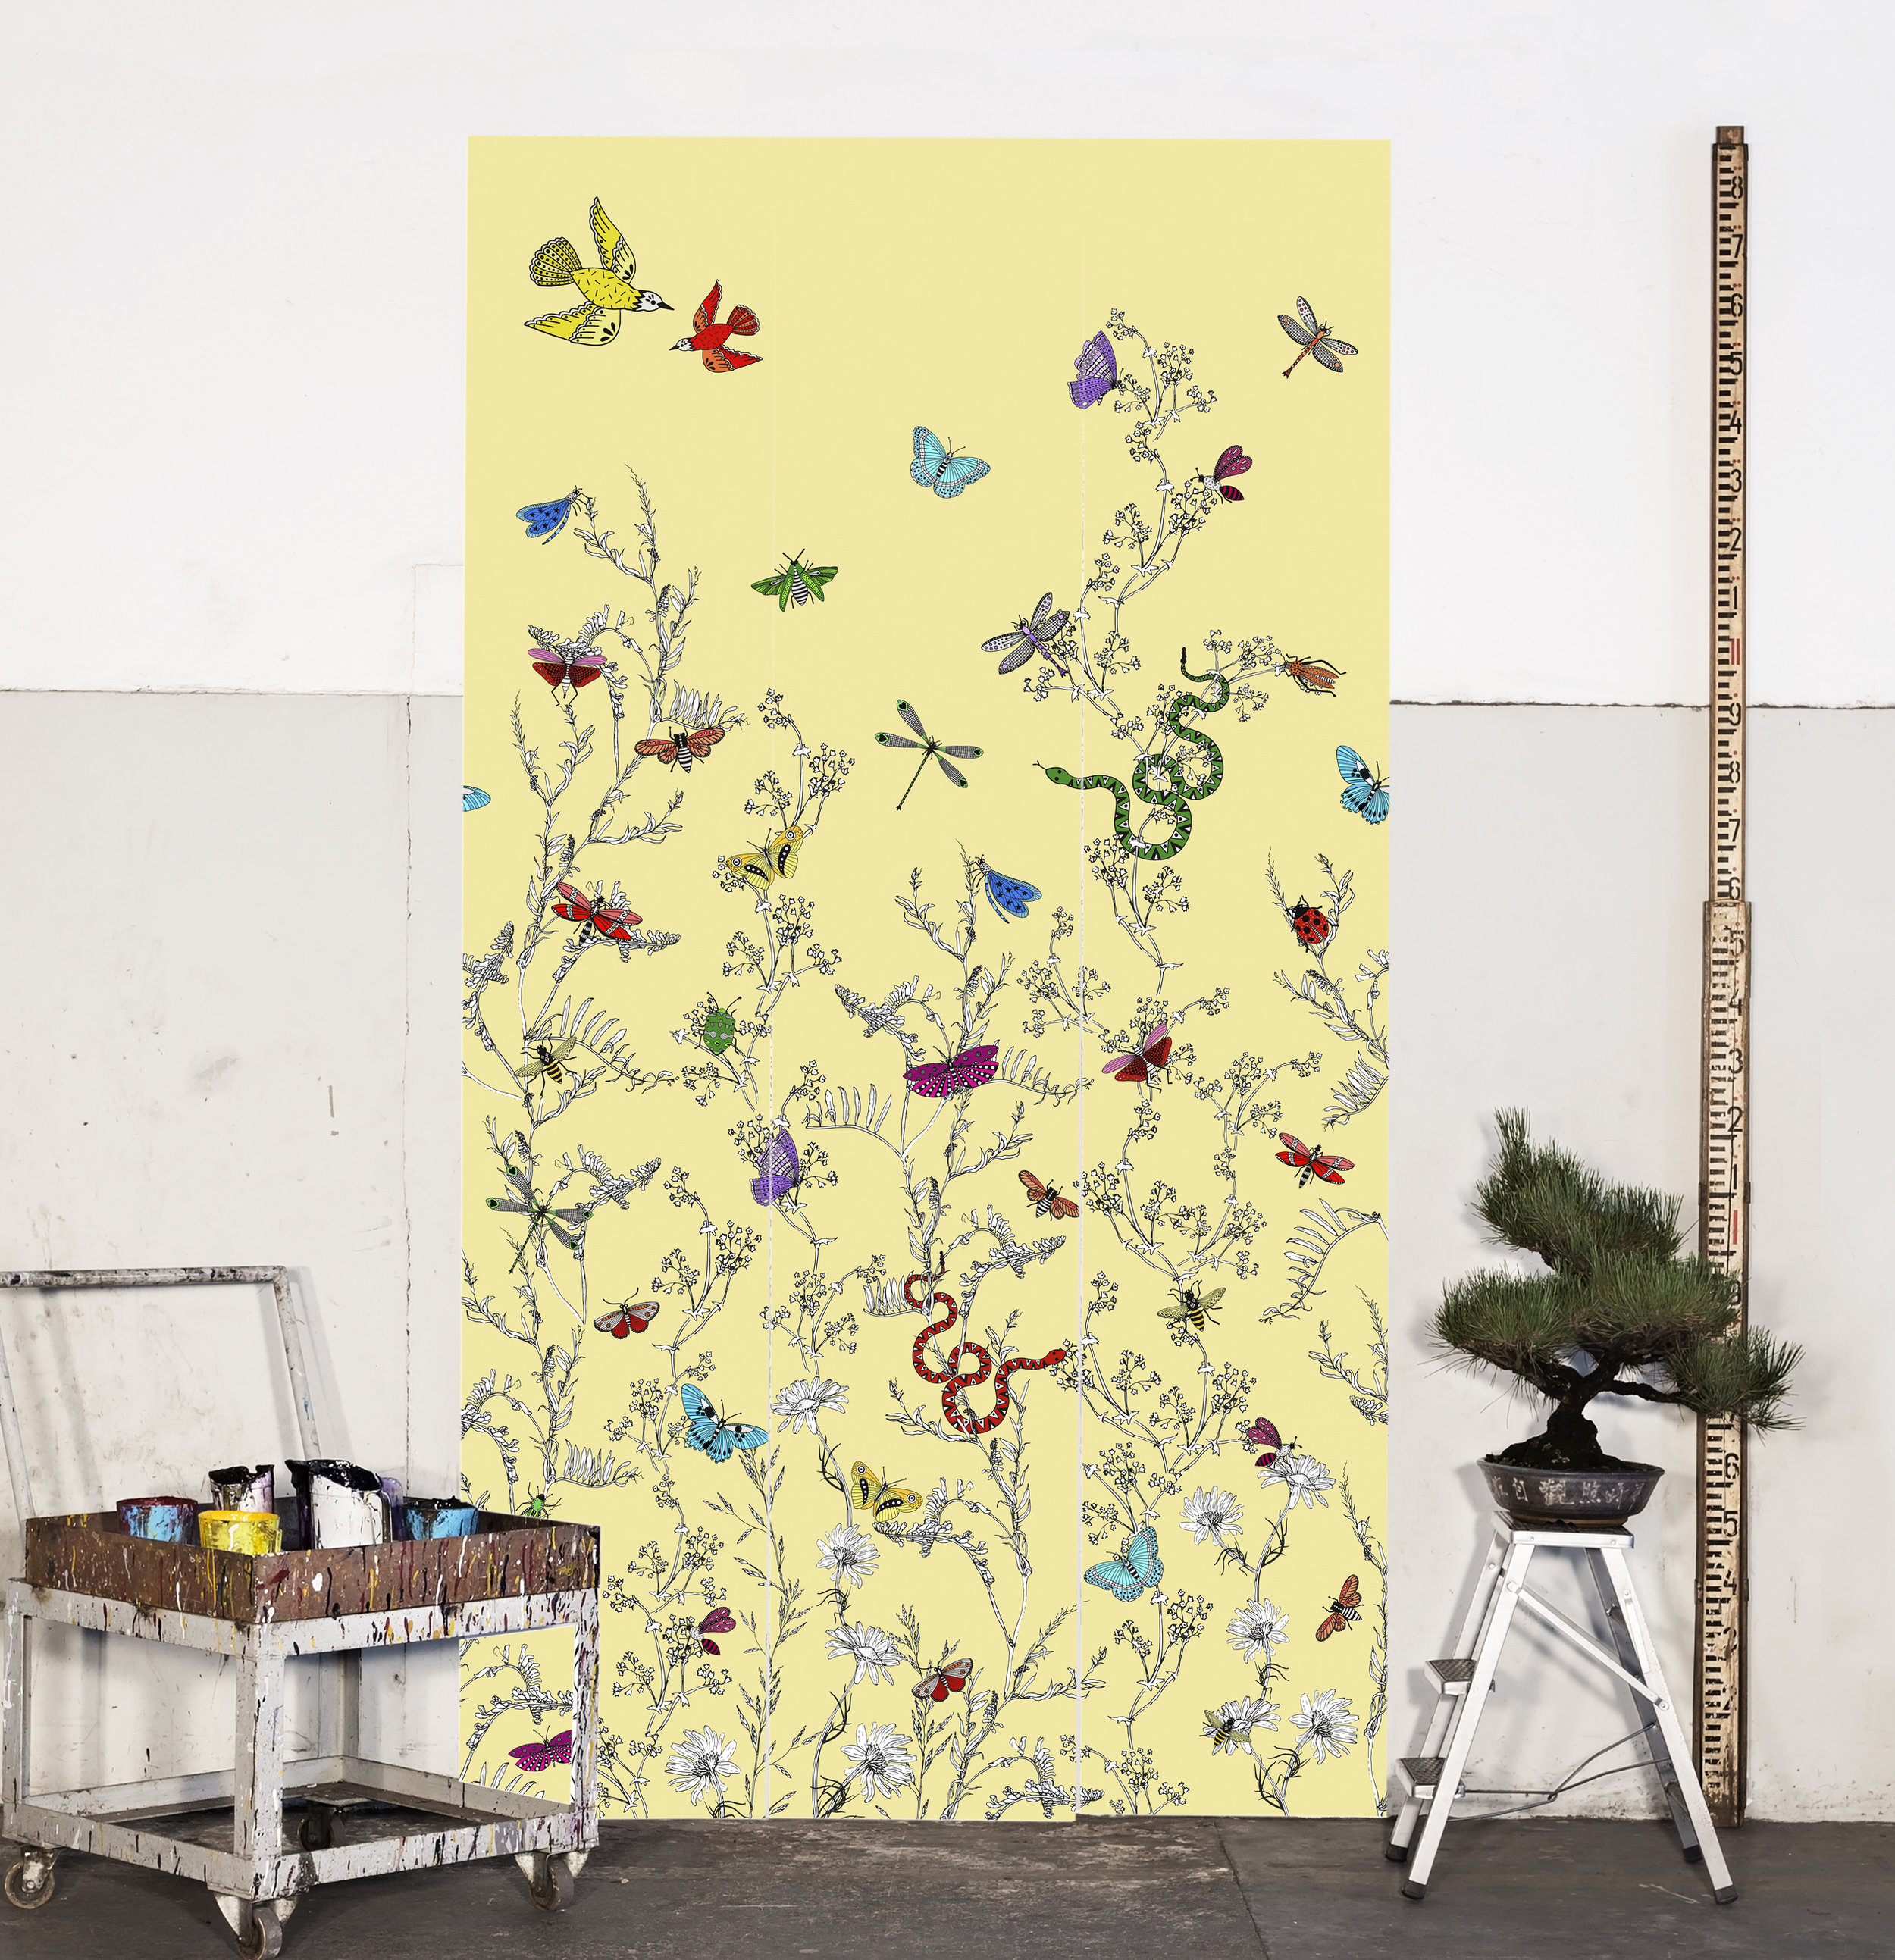 as020_bugs-painel_amb-amarelo.jpg